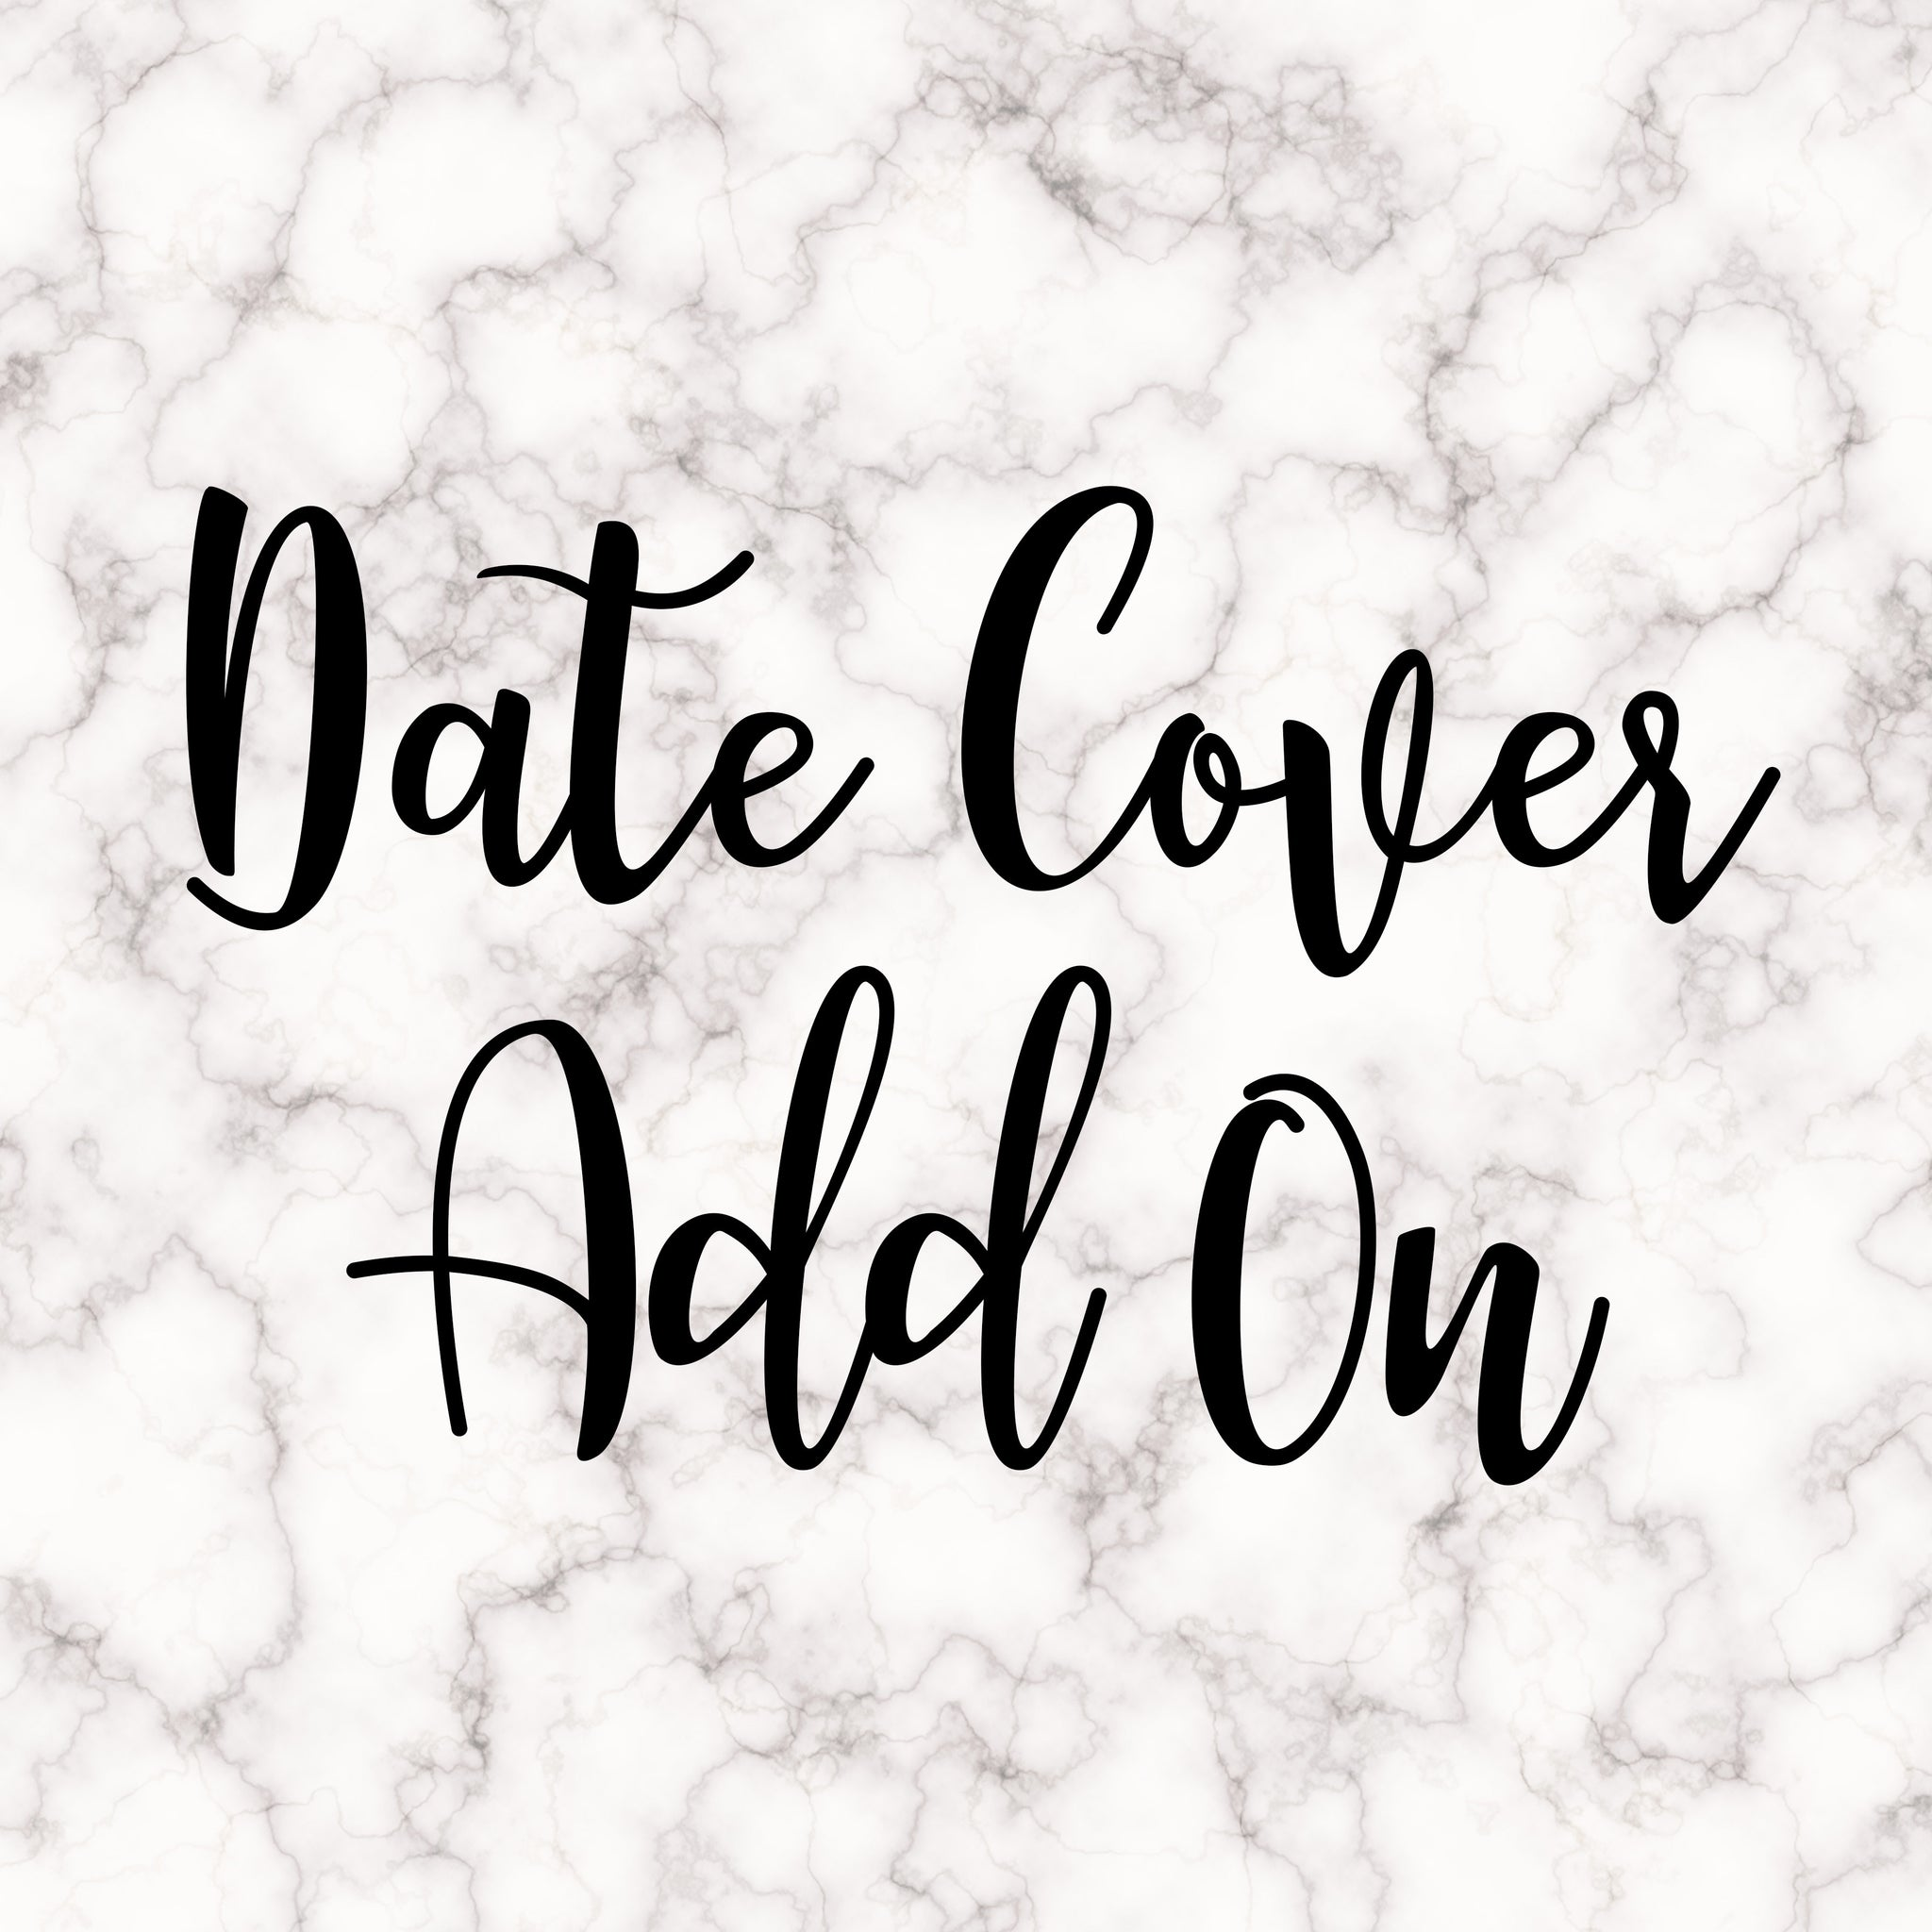 Date Cover Add on